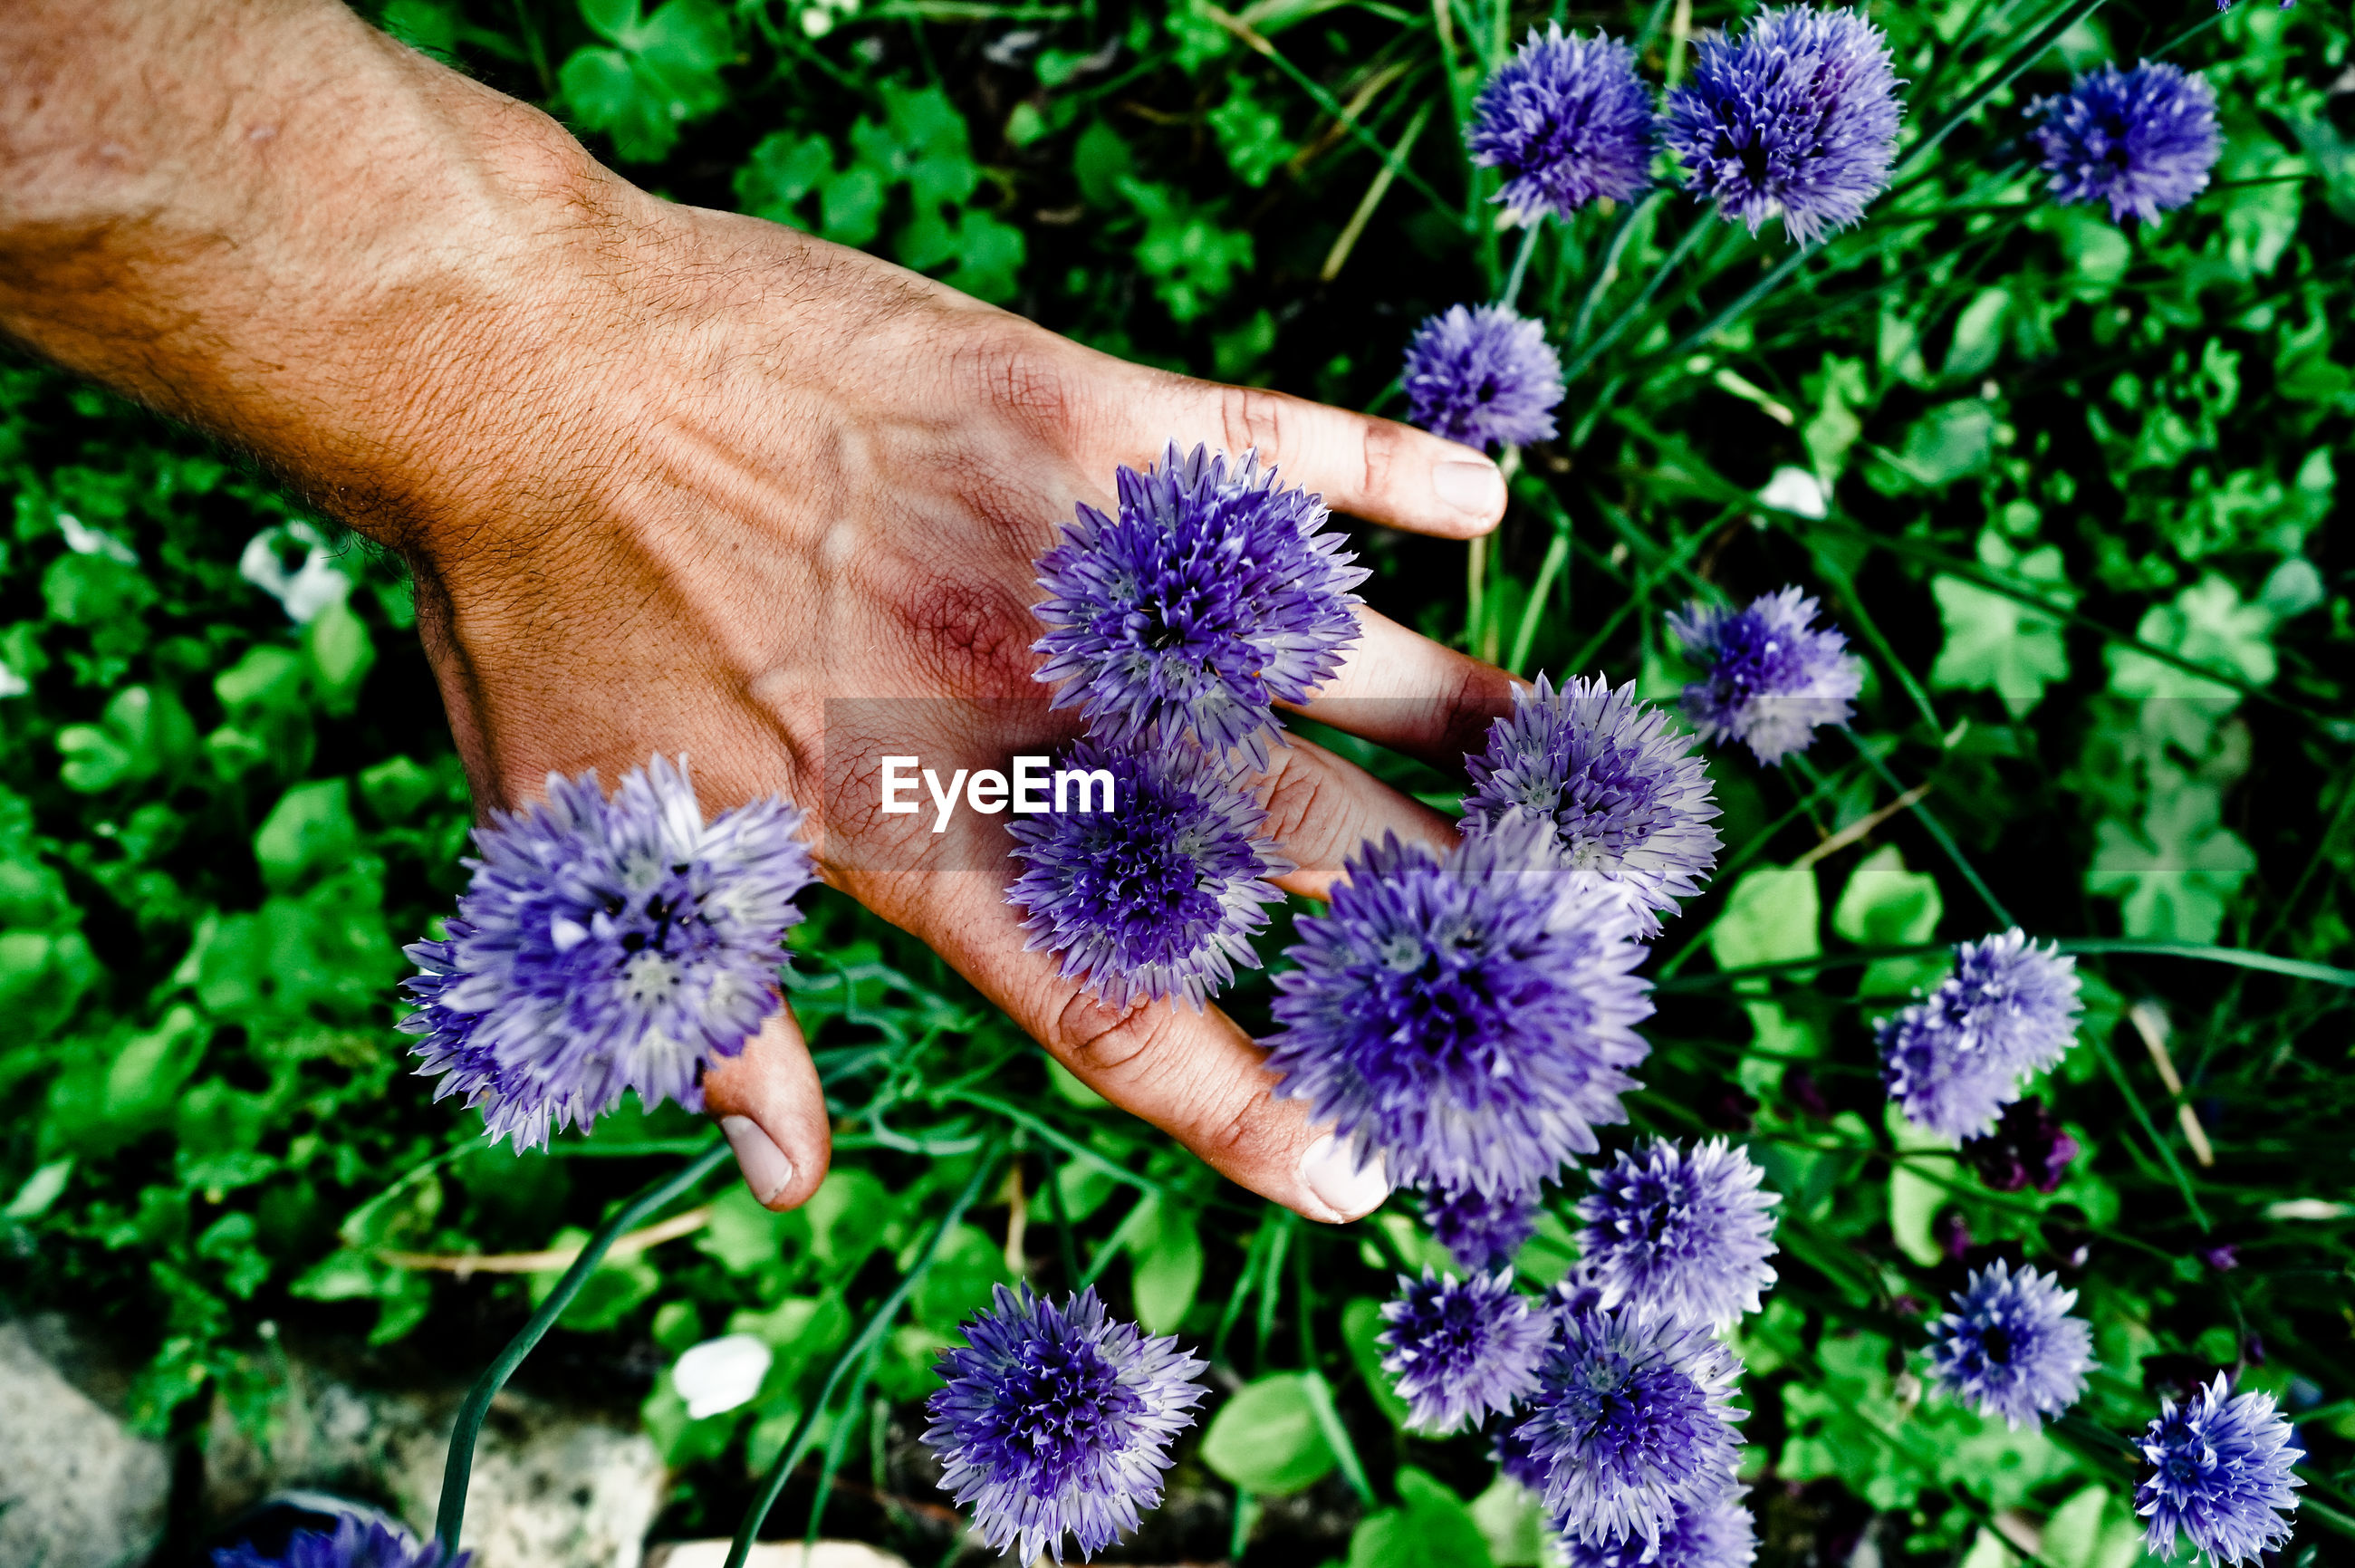 Close-up of a hand touching flowers